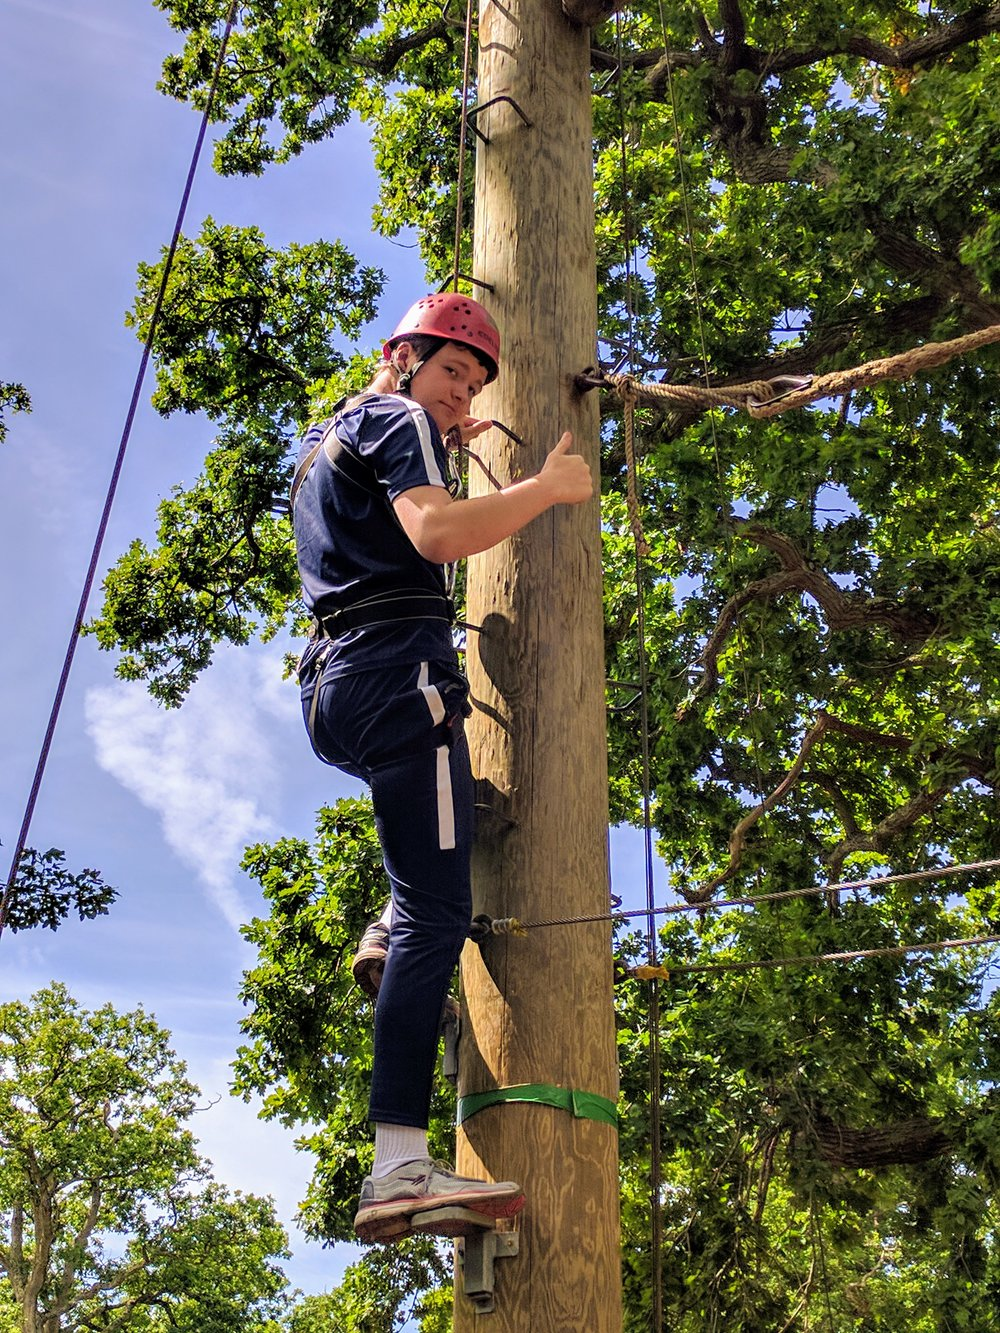 The future could hold a career as BT Openreach engineer. Well done!